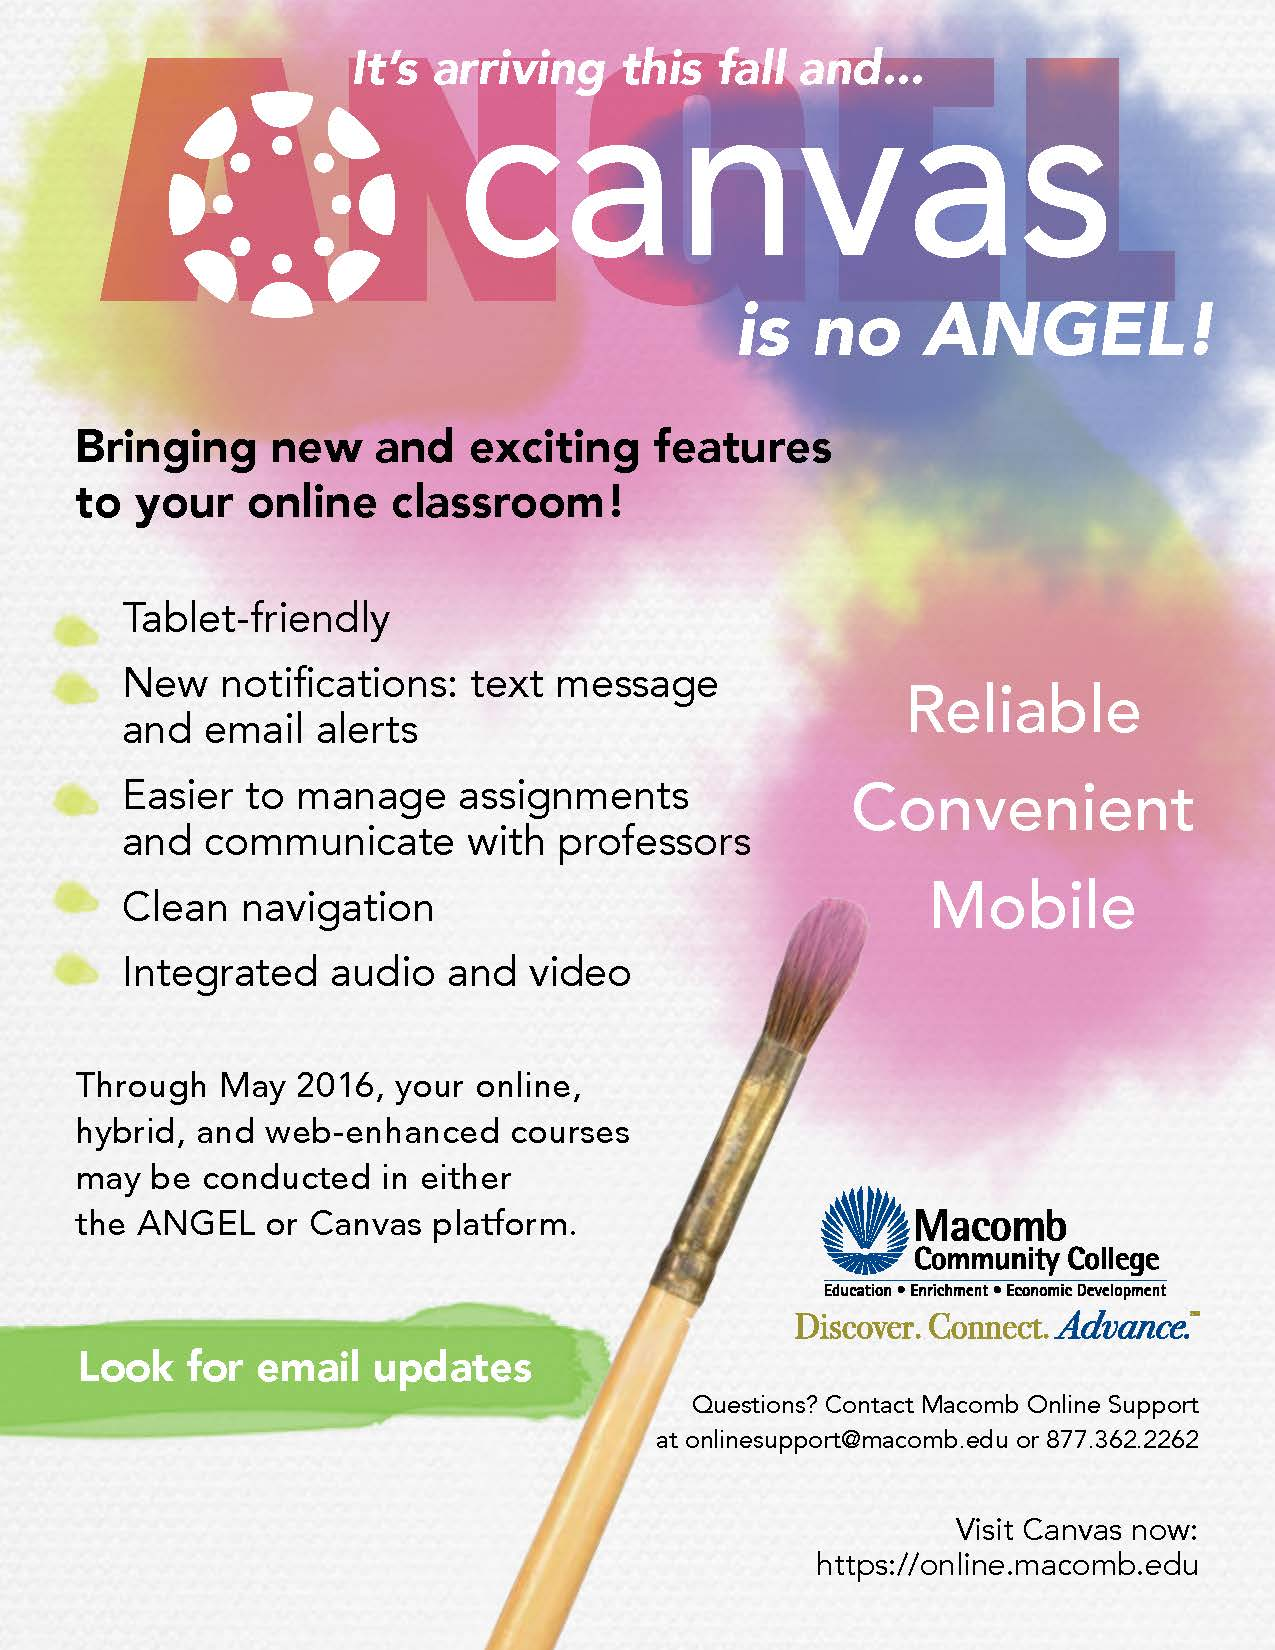 Canvas is no ANGEL!